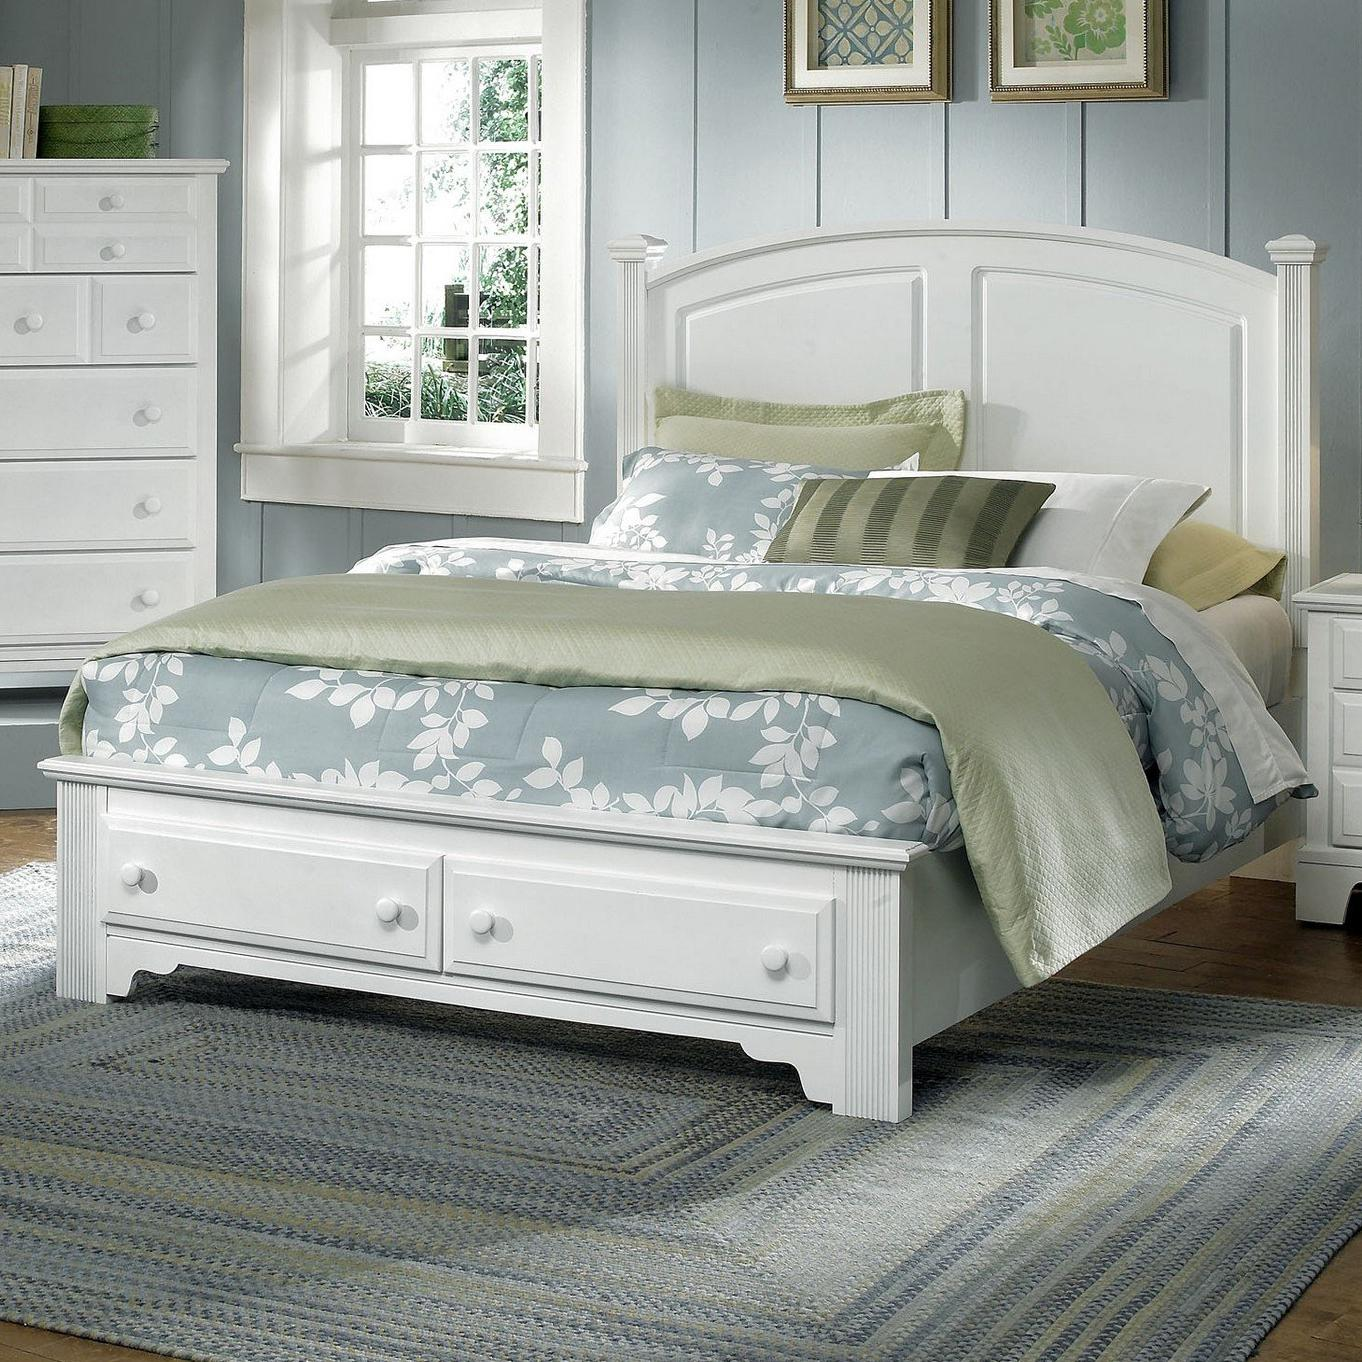 Vaughan Bassett Hamilton/Franklin Full Panel Storage Bed - Item Number: BB6-556+046+302+444T